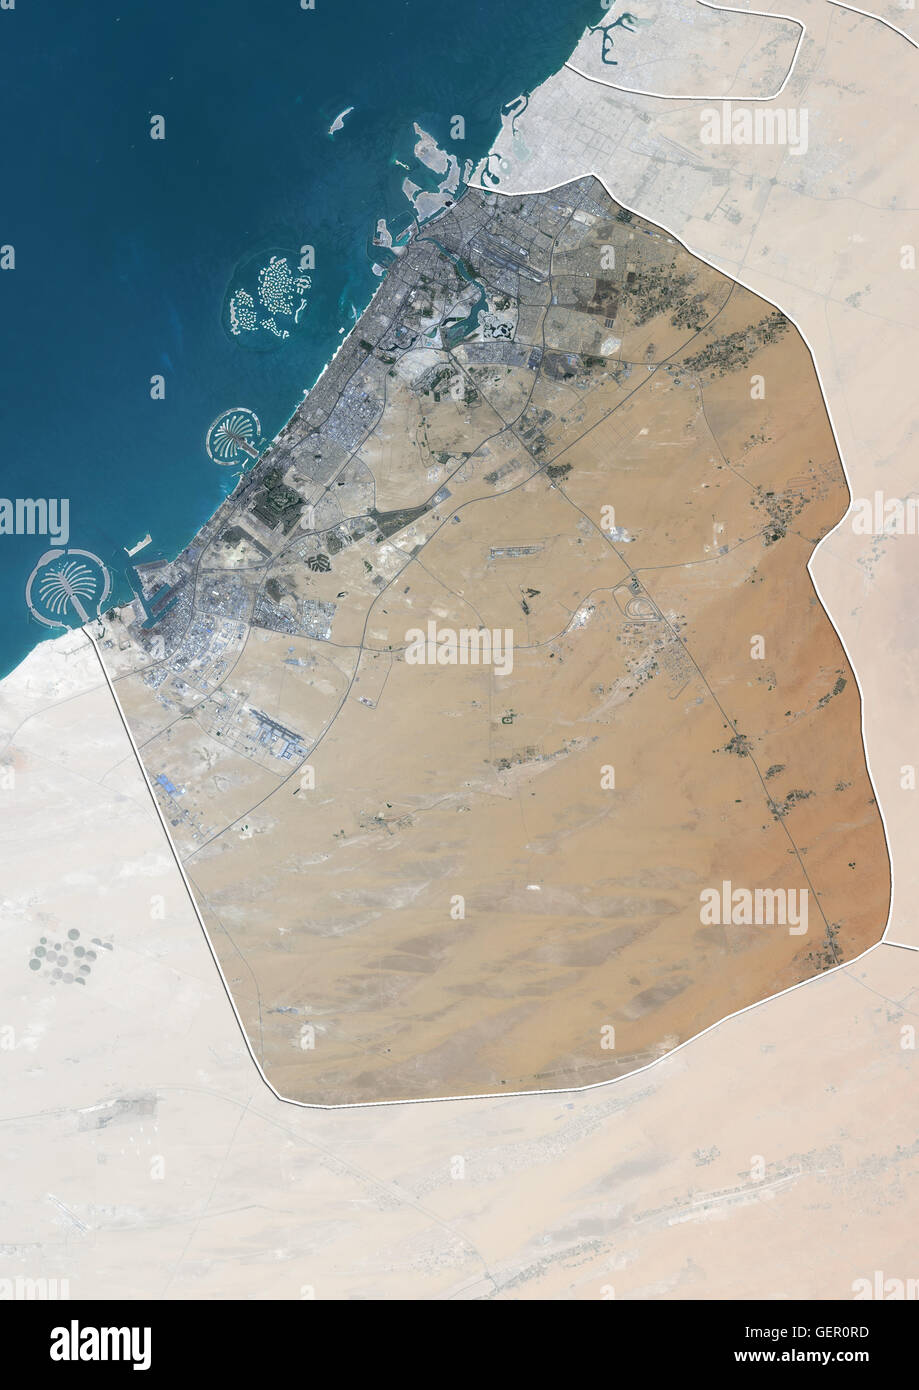 Satellite view of the emirate of dubai united arab emirates with satellite view of the emirate of dubai united arab emirates with country boundaries and mask the image shows palm jebel ali palm jumeirah and the world gumiabroncs Images